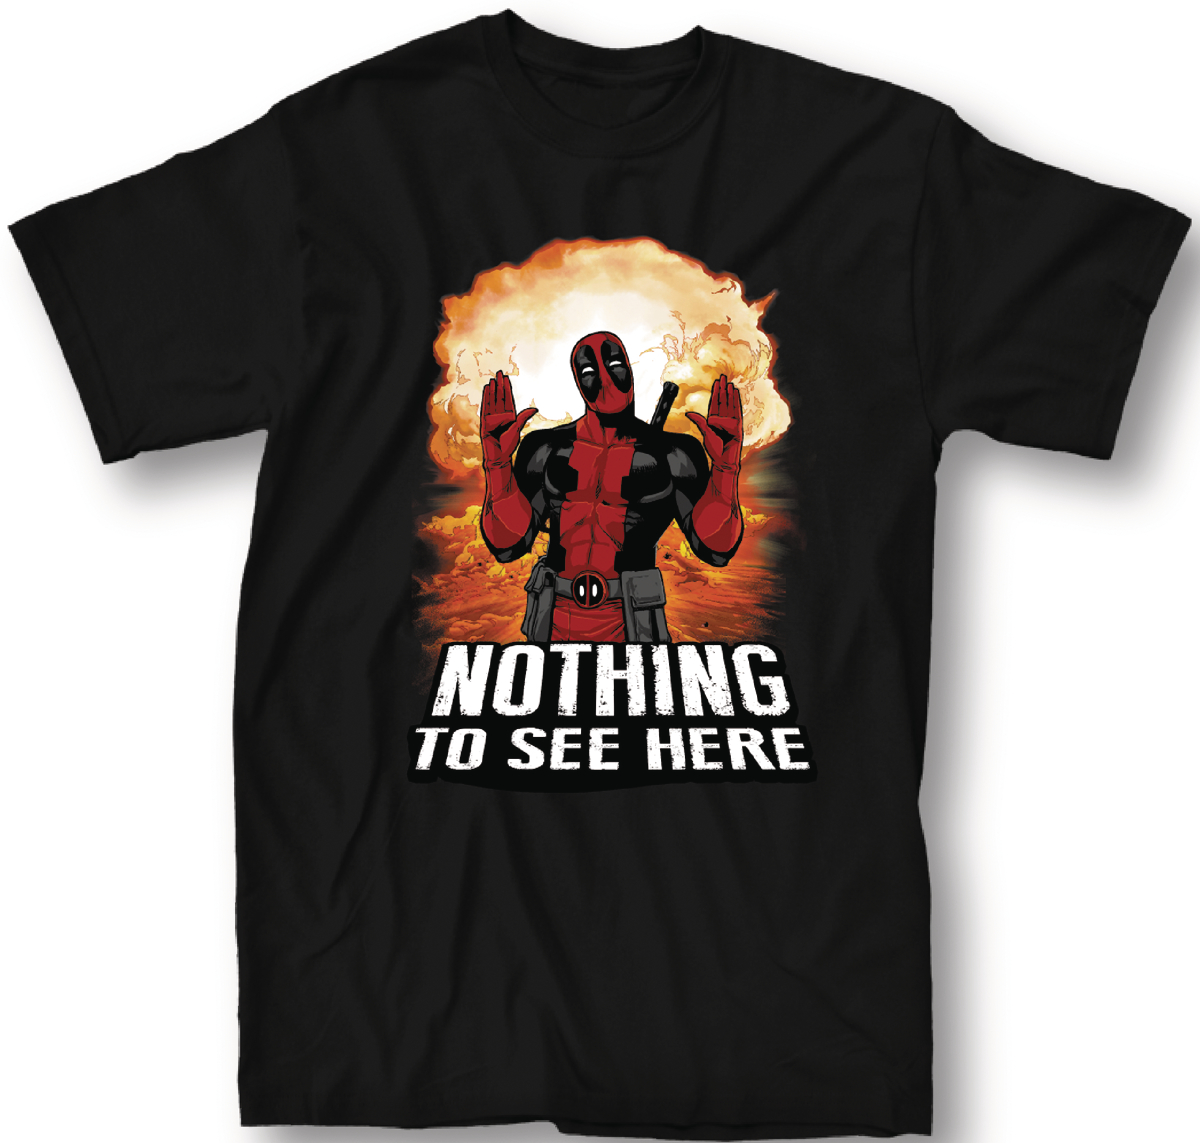 DEADPOOL NOTHING TO SEE HERE BLACK T/S LG